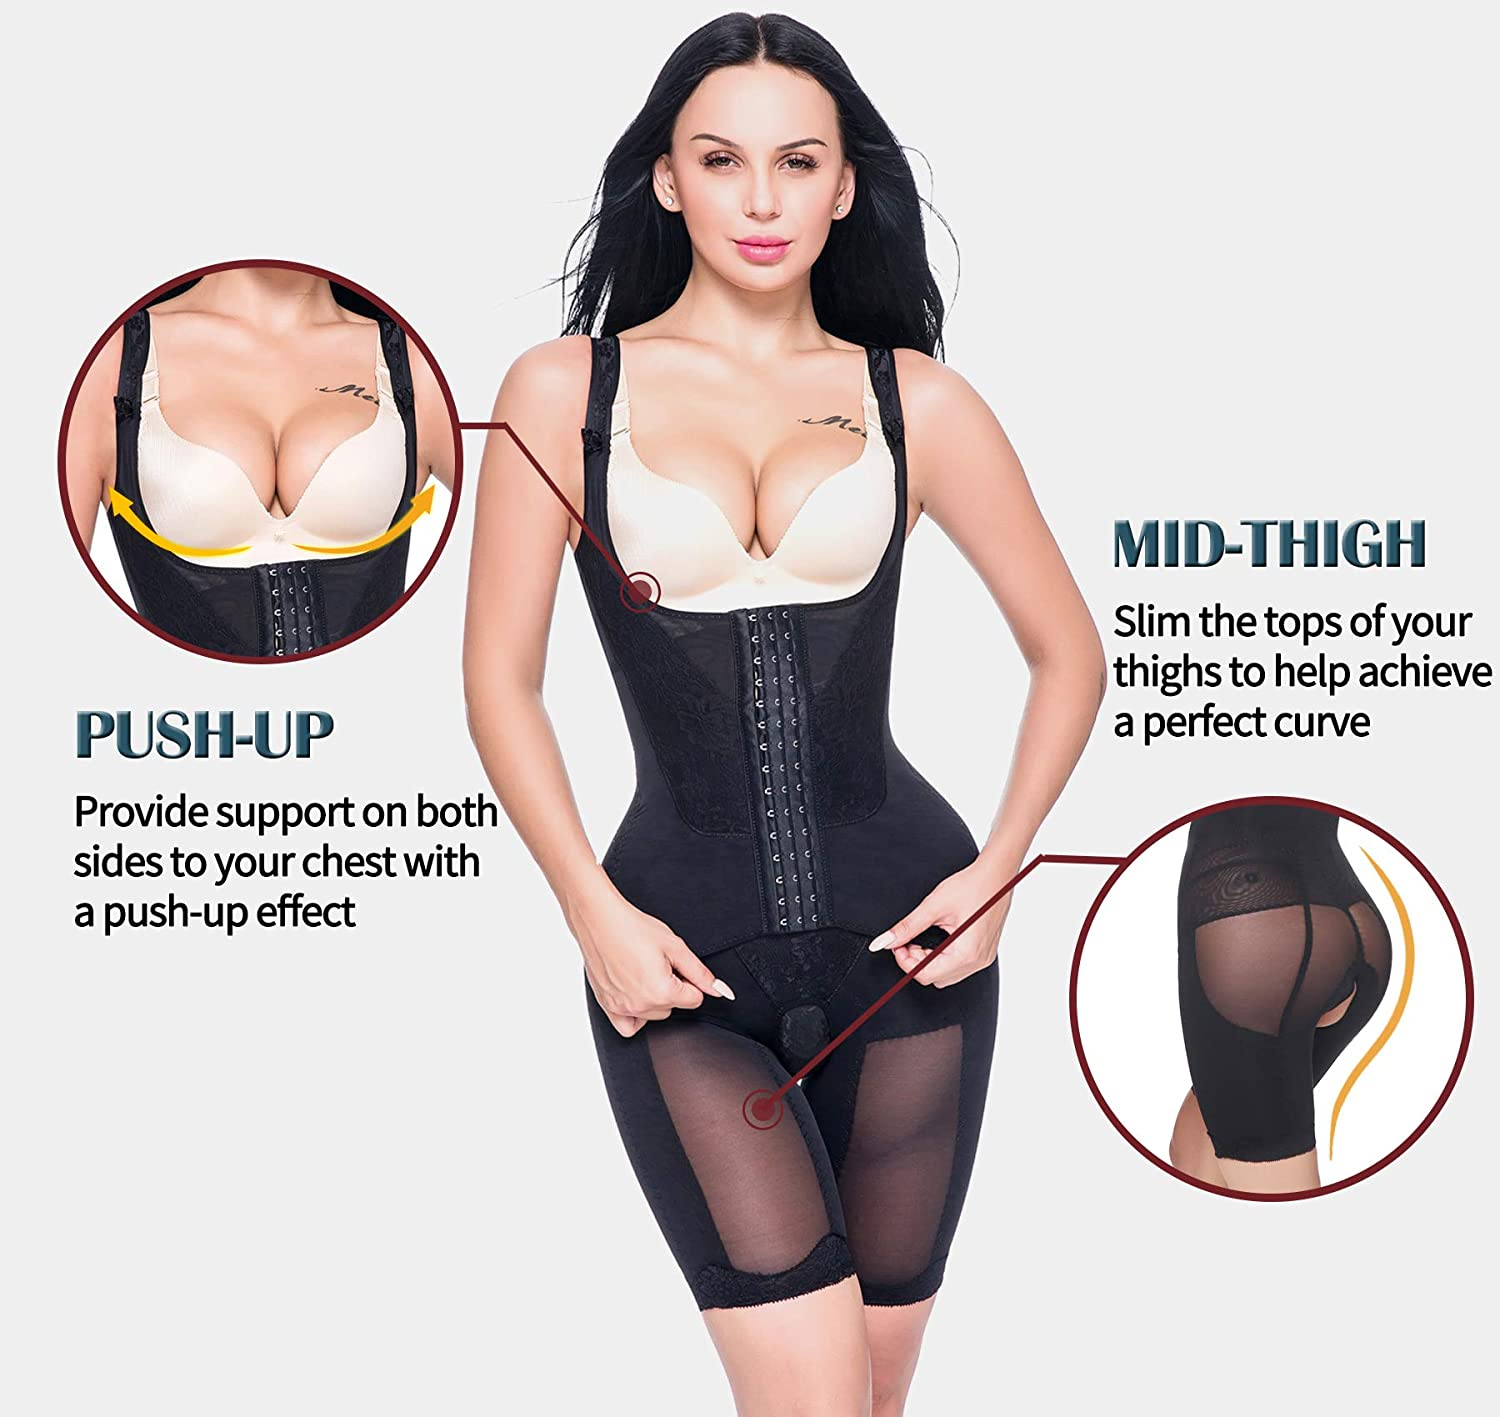 bd1535b423c60 MISS MOLY Women s Body Shaper Waist Trainer Cincher Thigh Reducer Corset  Underbust Bodysuit Shapewear Slimmer Tummy Control at Amazon Women s  Clothing store ...